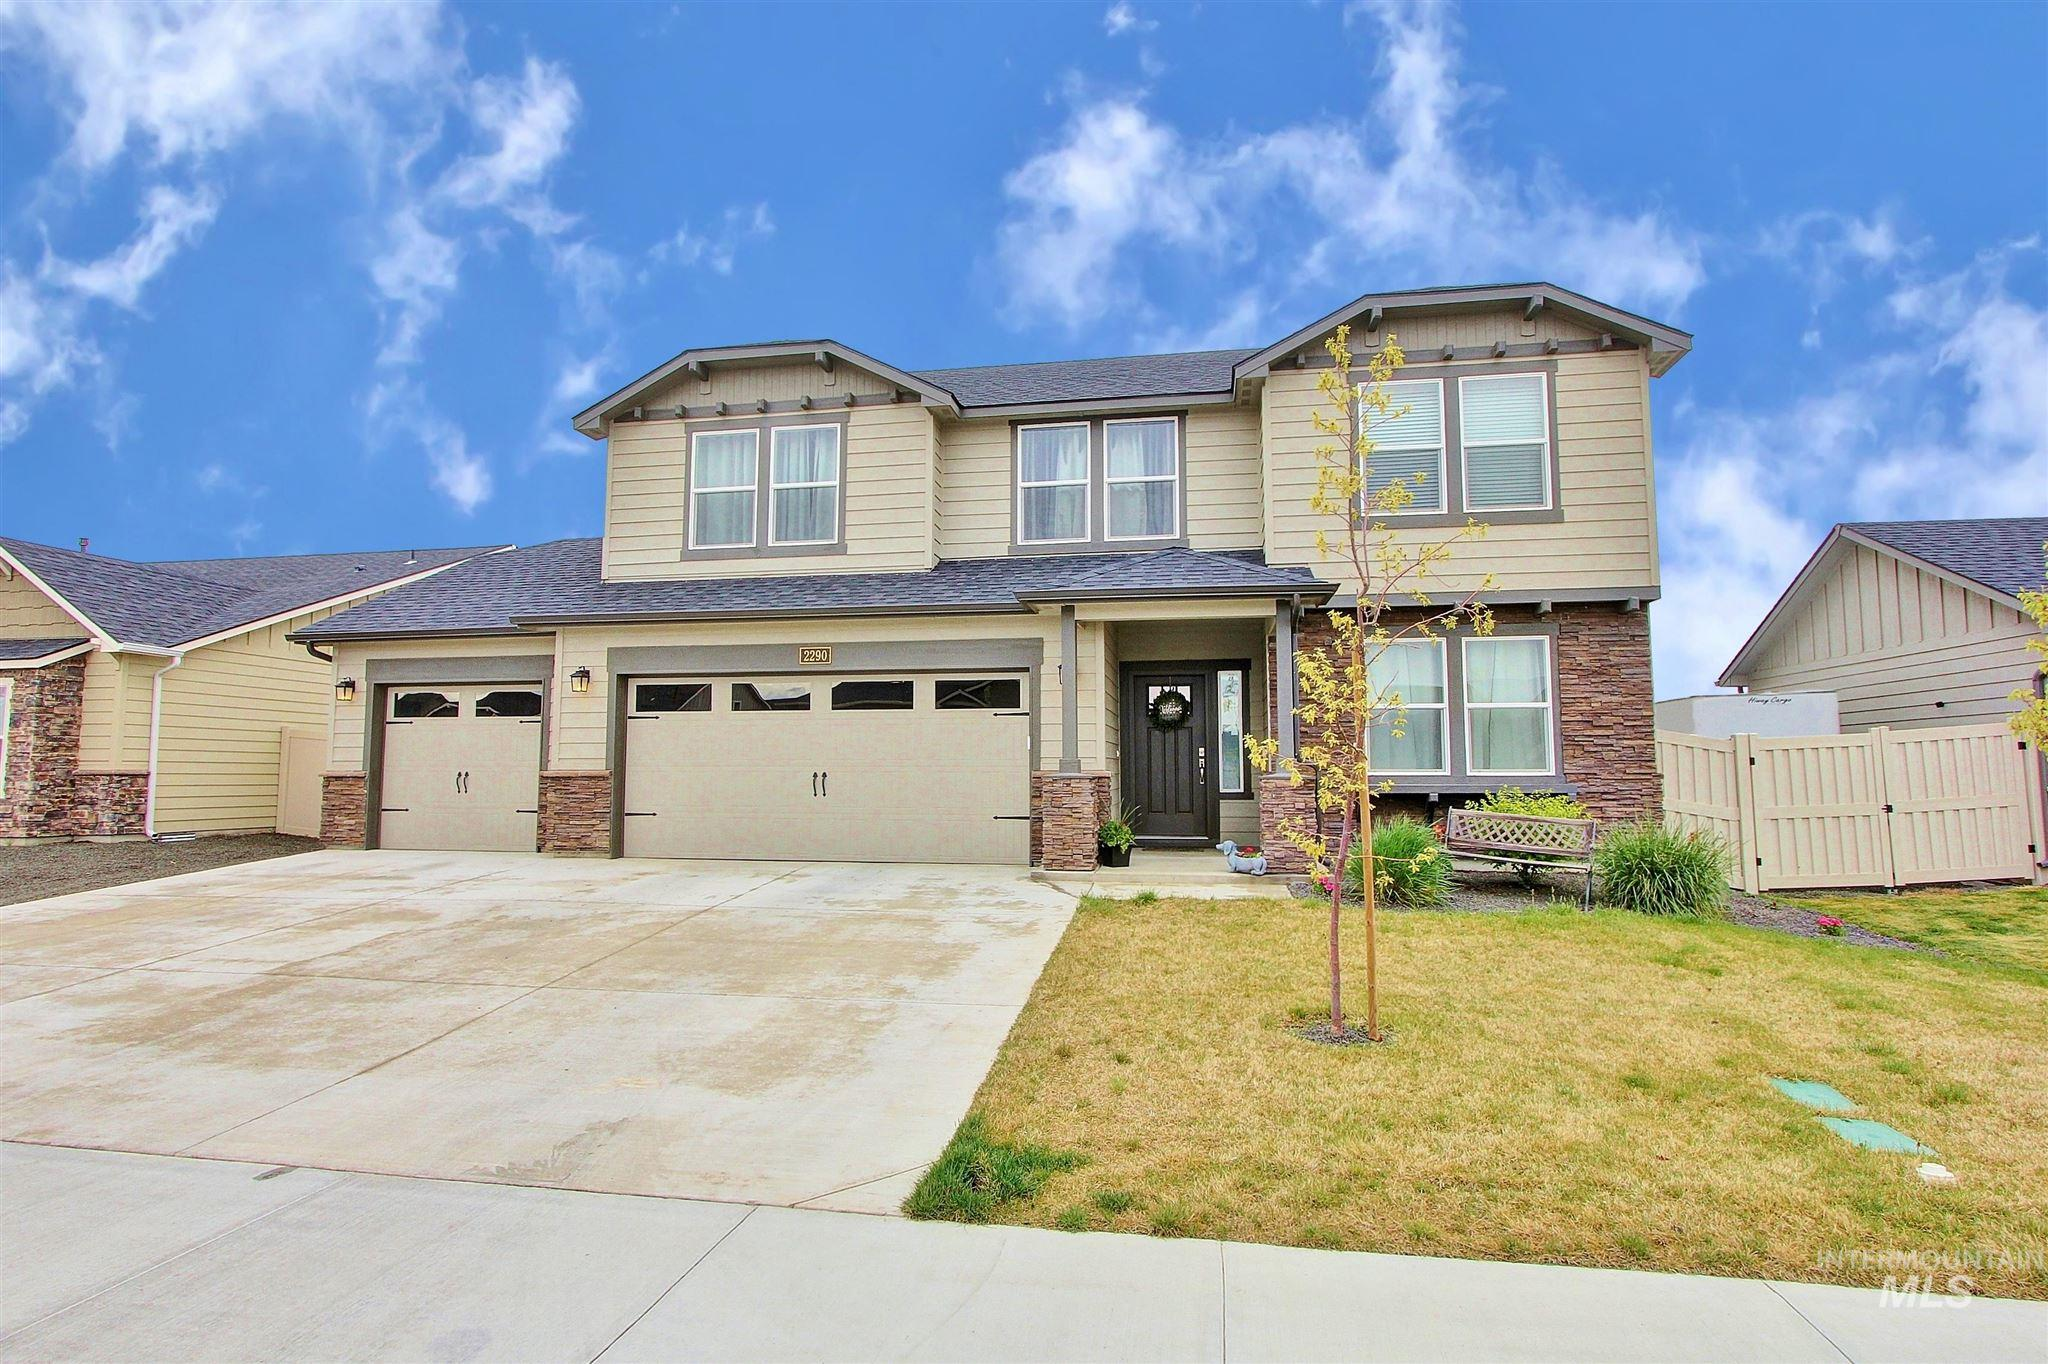 2290 W Coneflower Property Photo - Nampa, ID real estate listing